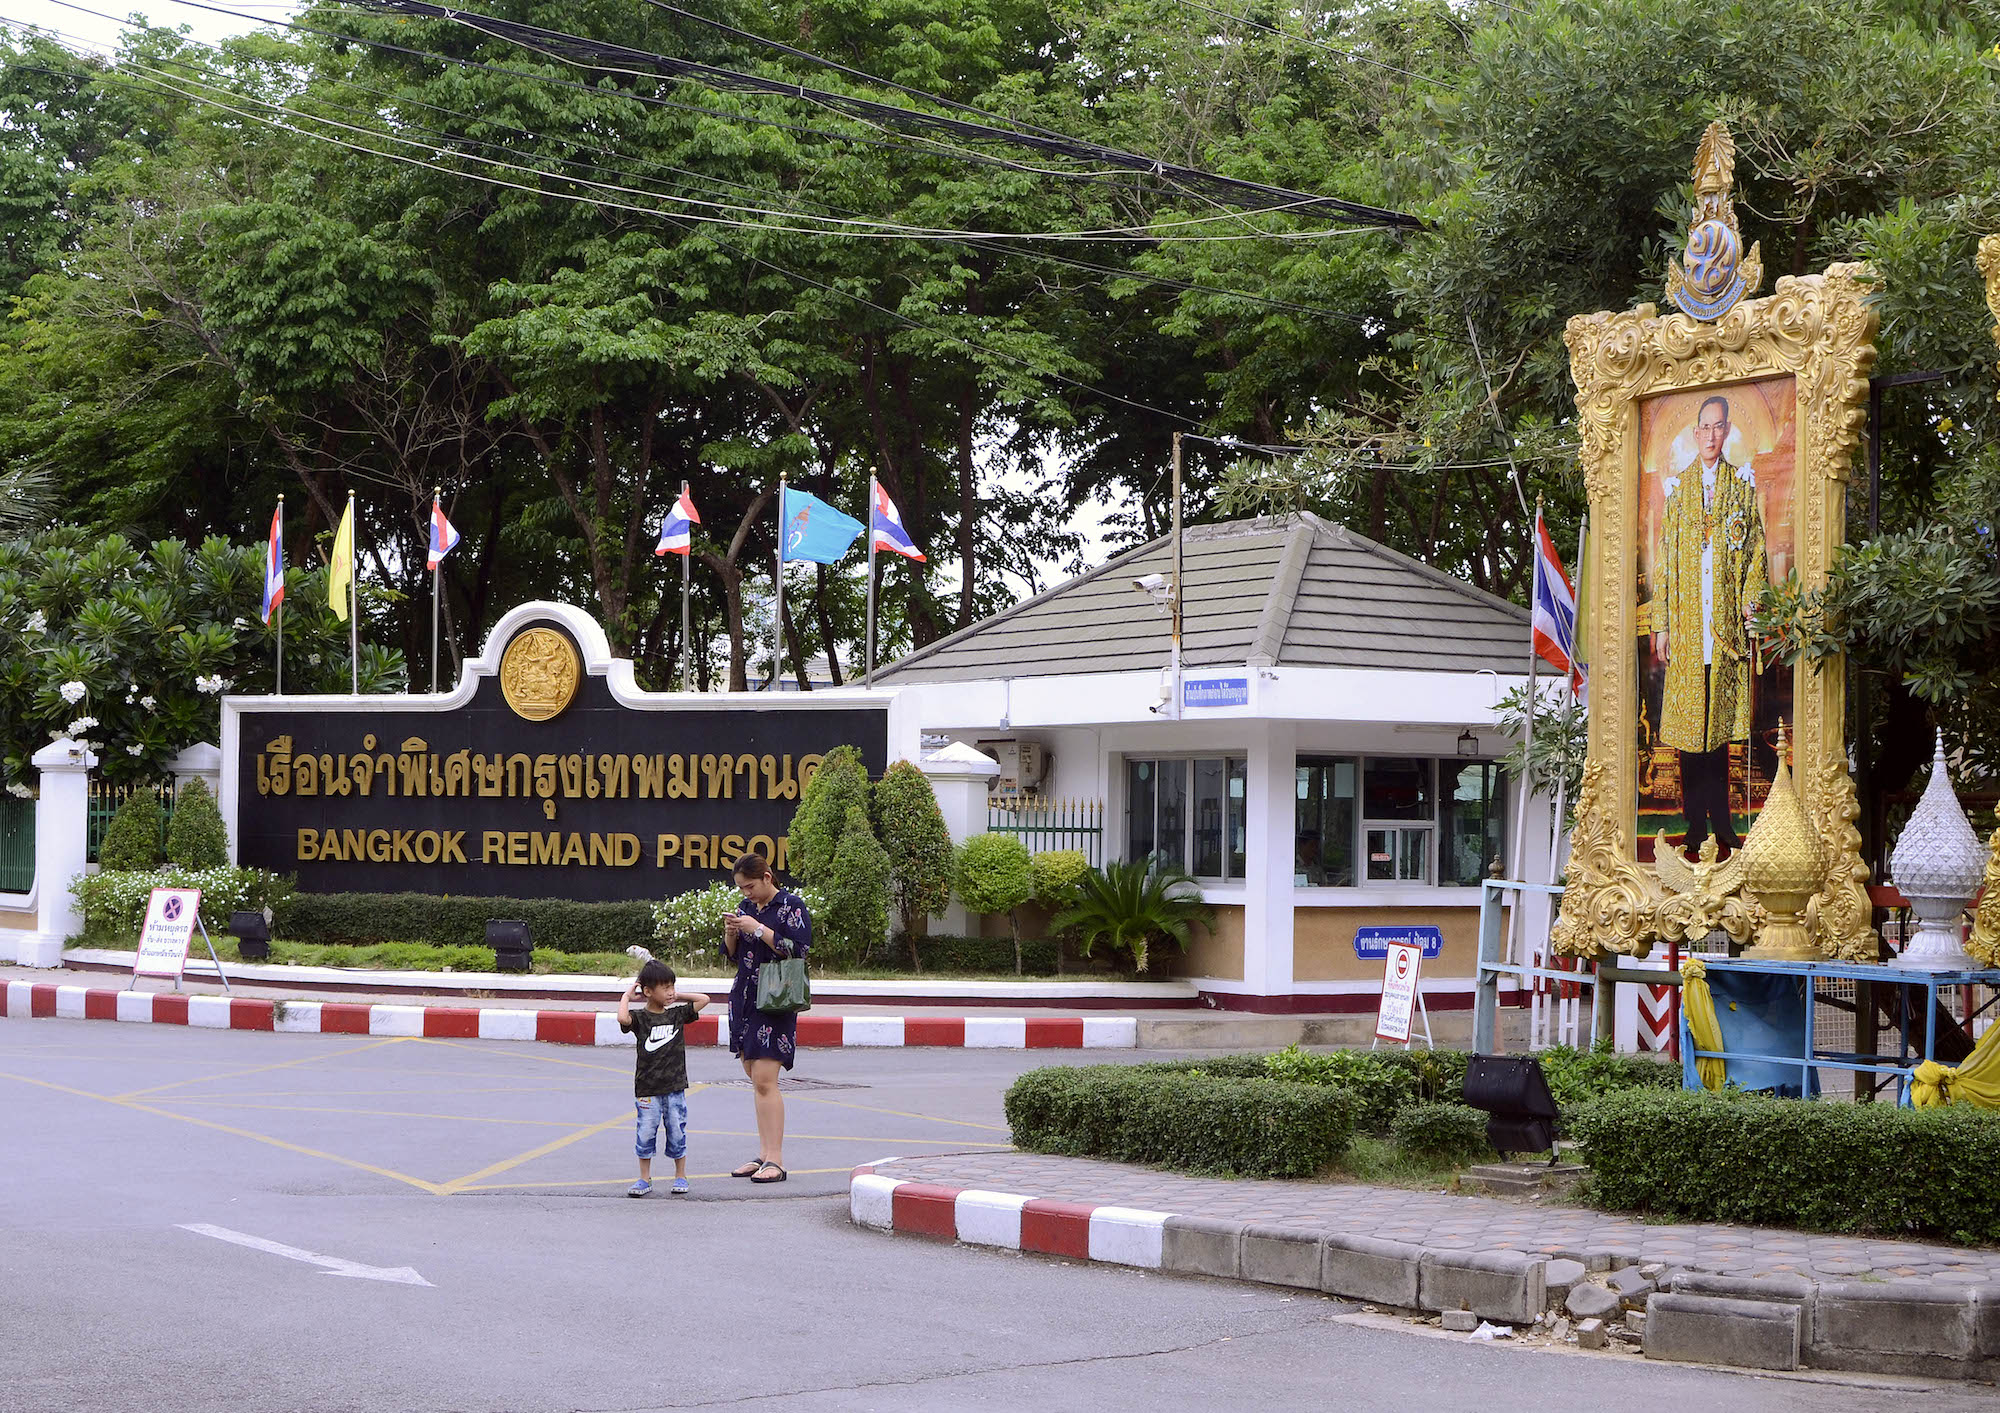 Bangkok Remand Prison, where Clark is being held as he awaits the outcome of his extradition hearing.